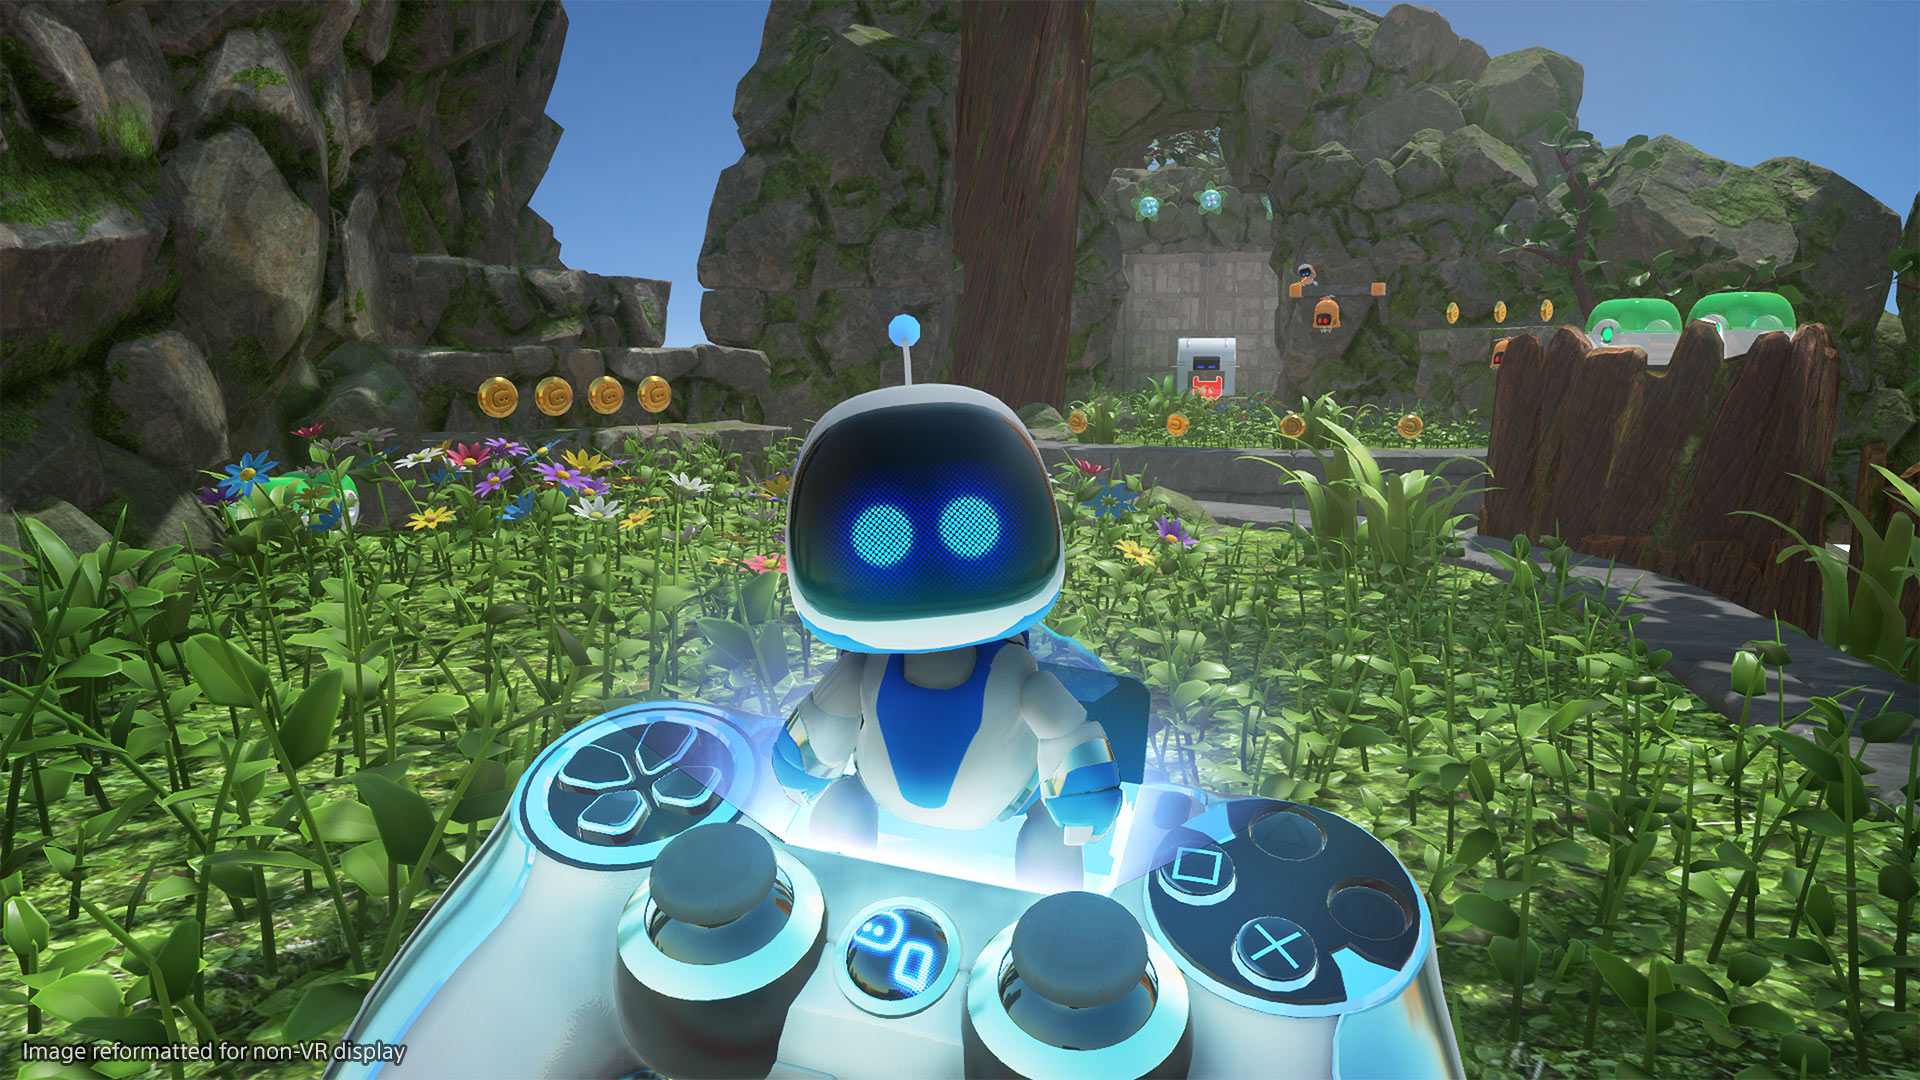 No Plans for 'Astro Bot' Co-op Multiplayer, Sony Confirms